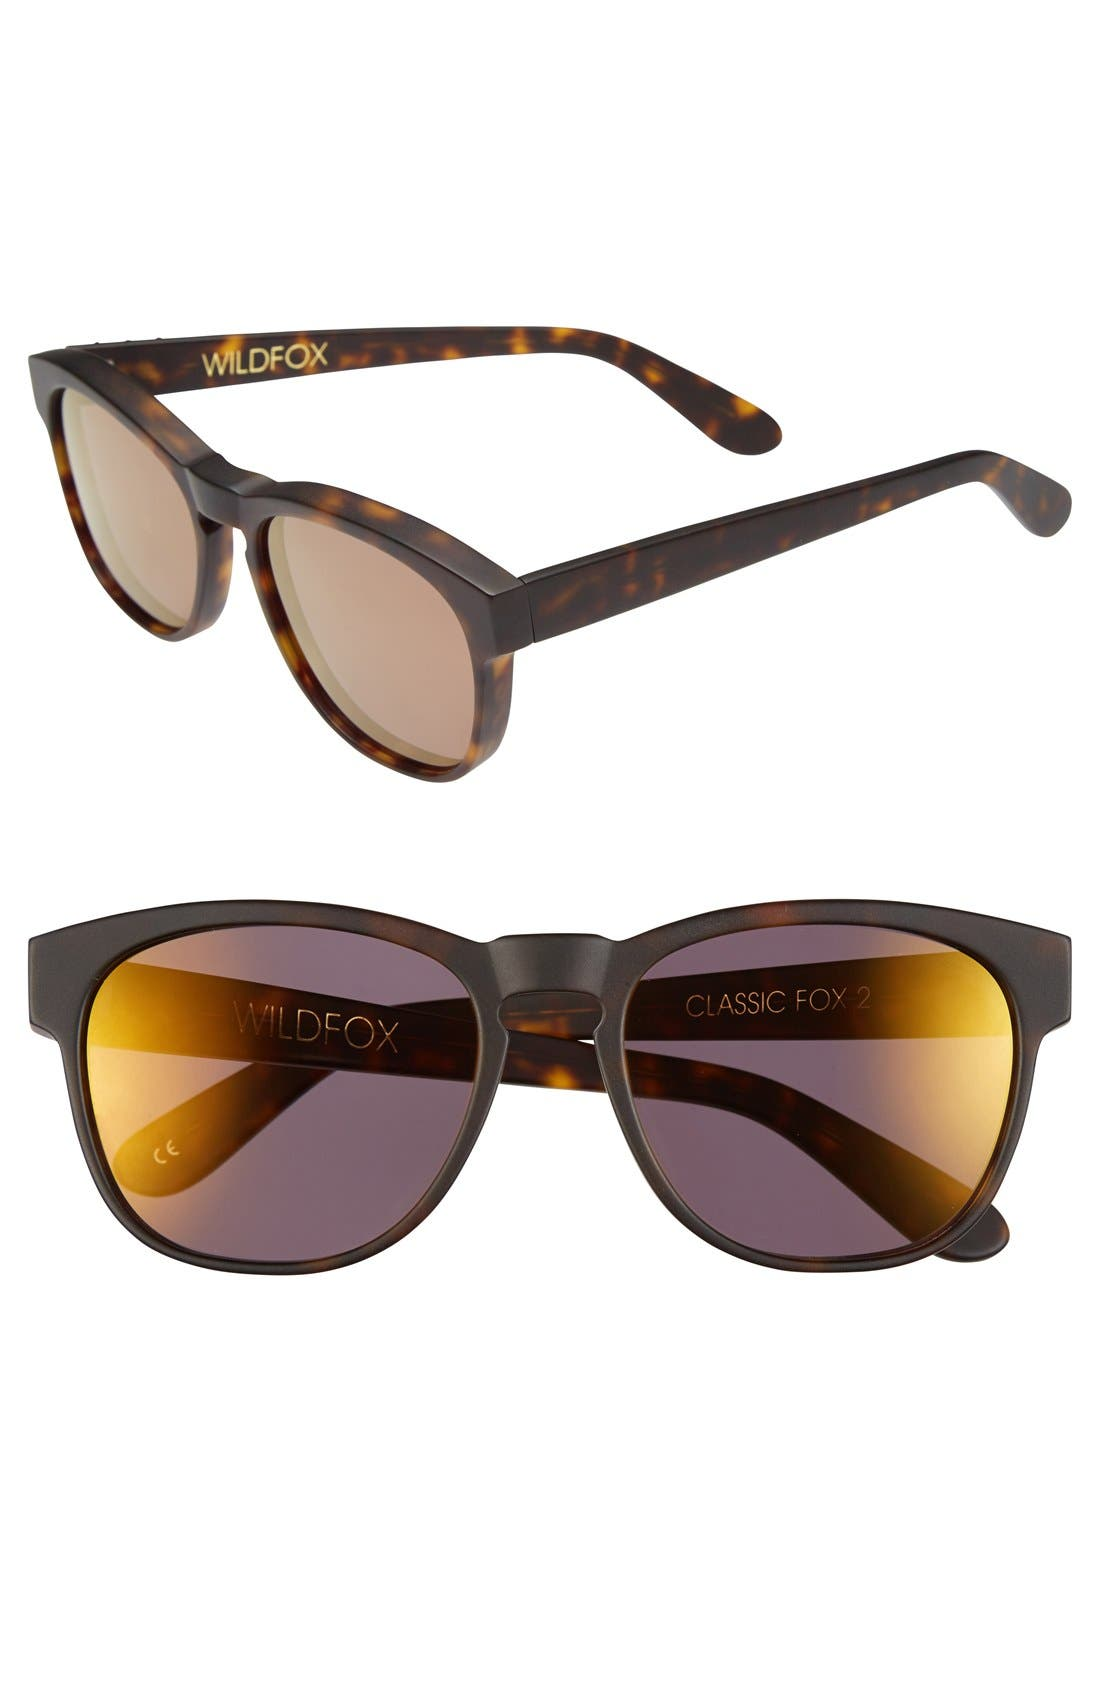 Alternate Image 1 Selected - Wildfox 'Classic Fox 2 Deluxe' 52mm Sunglasses